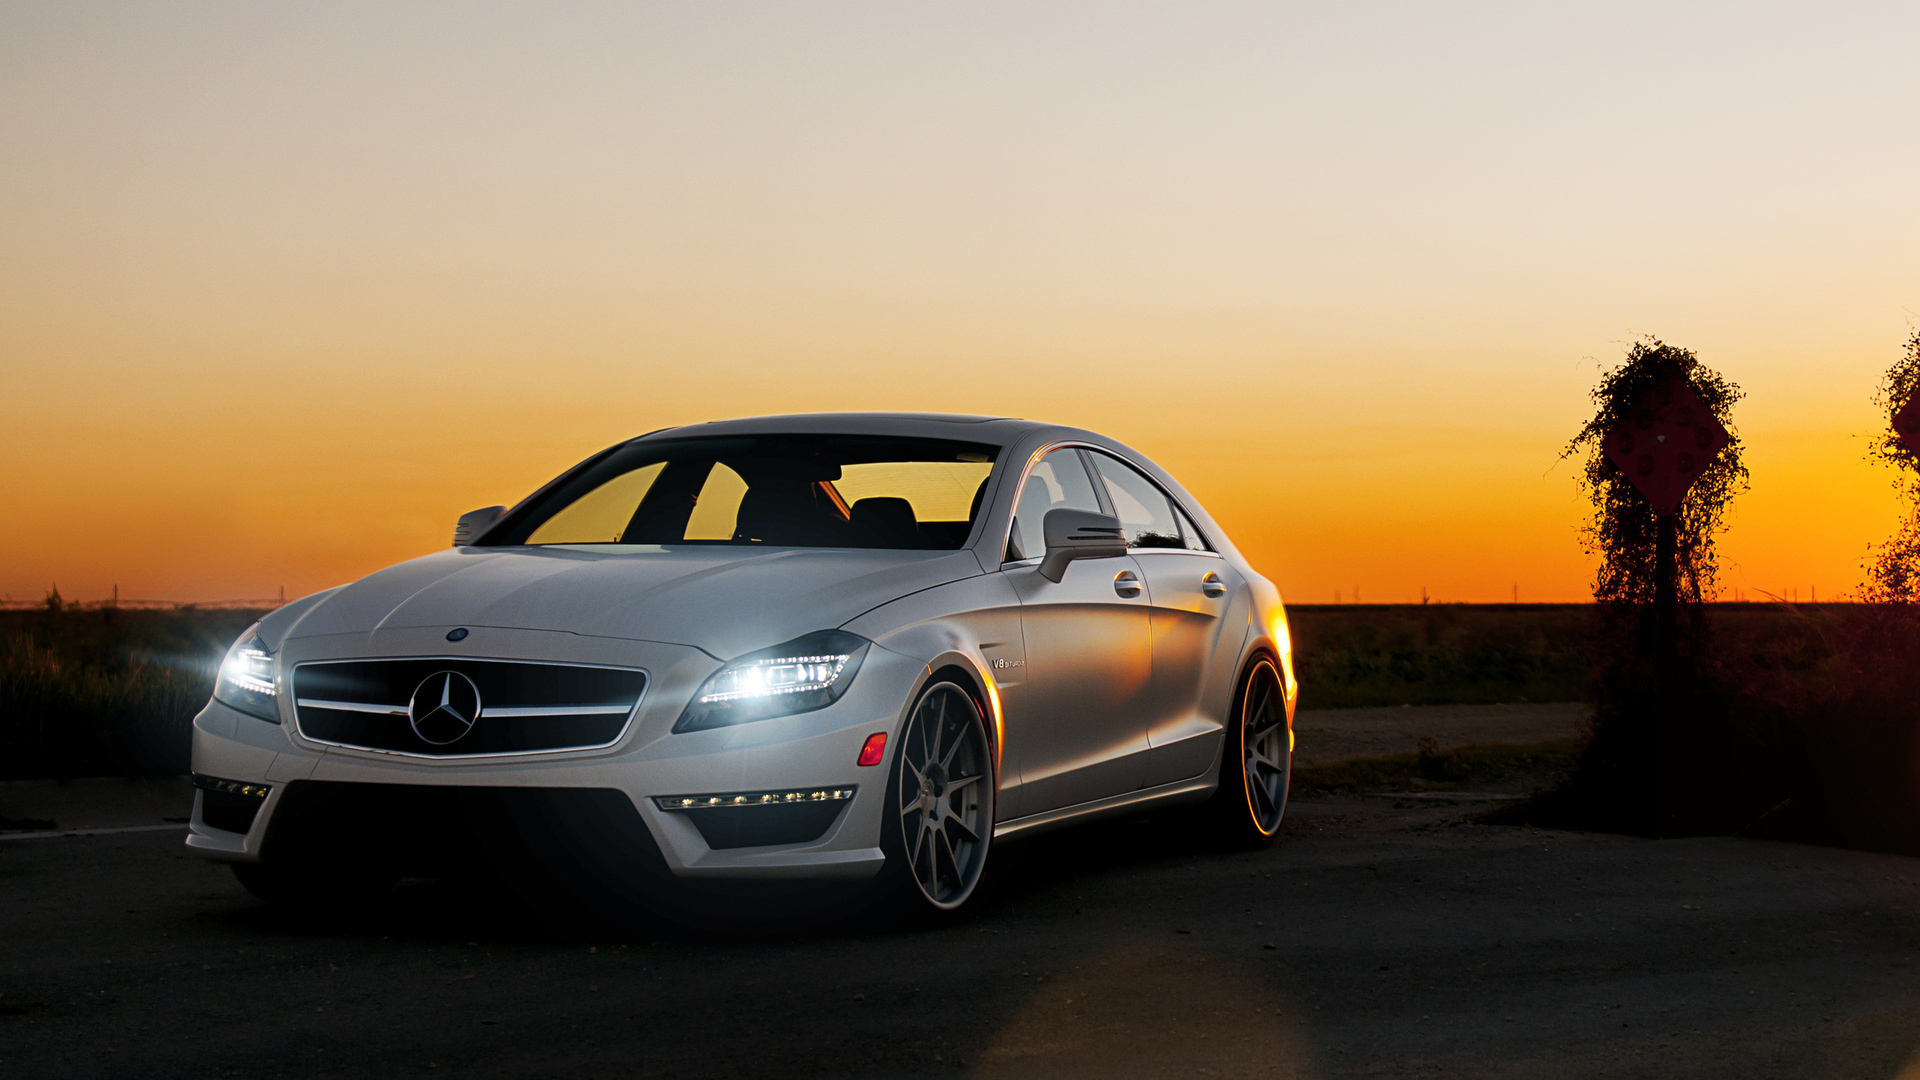 Mercedes Benz CLS63 960.04 Kb